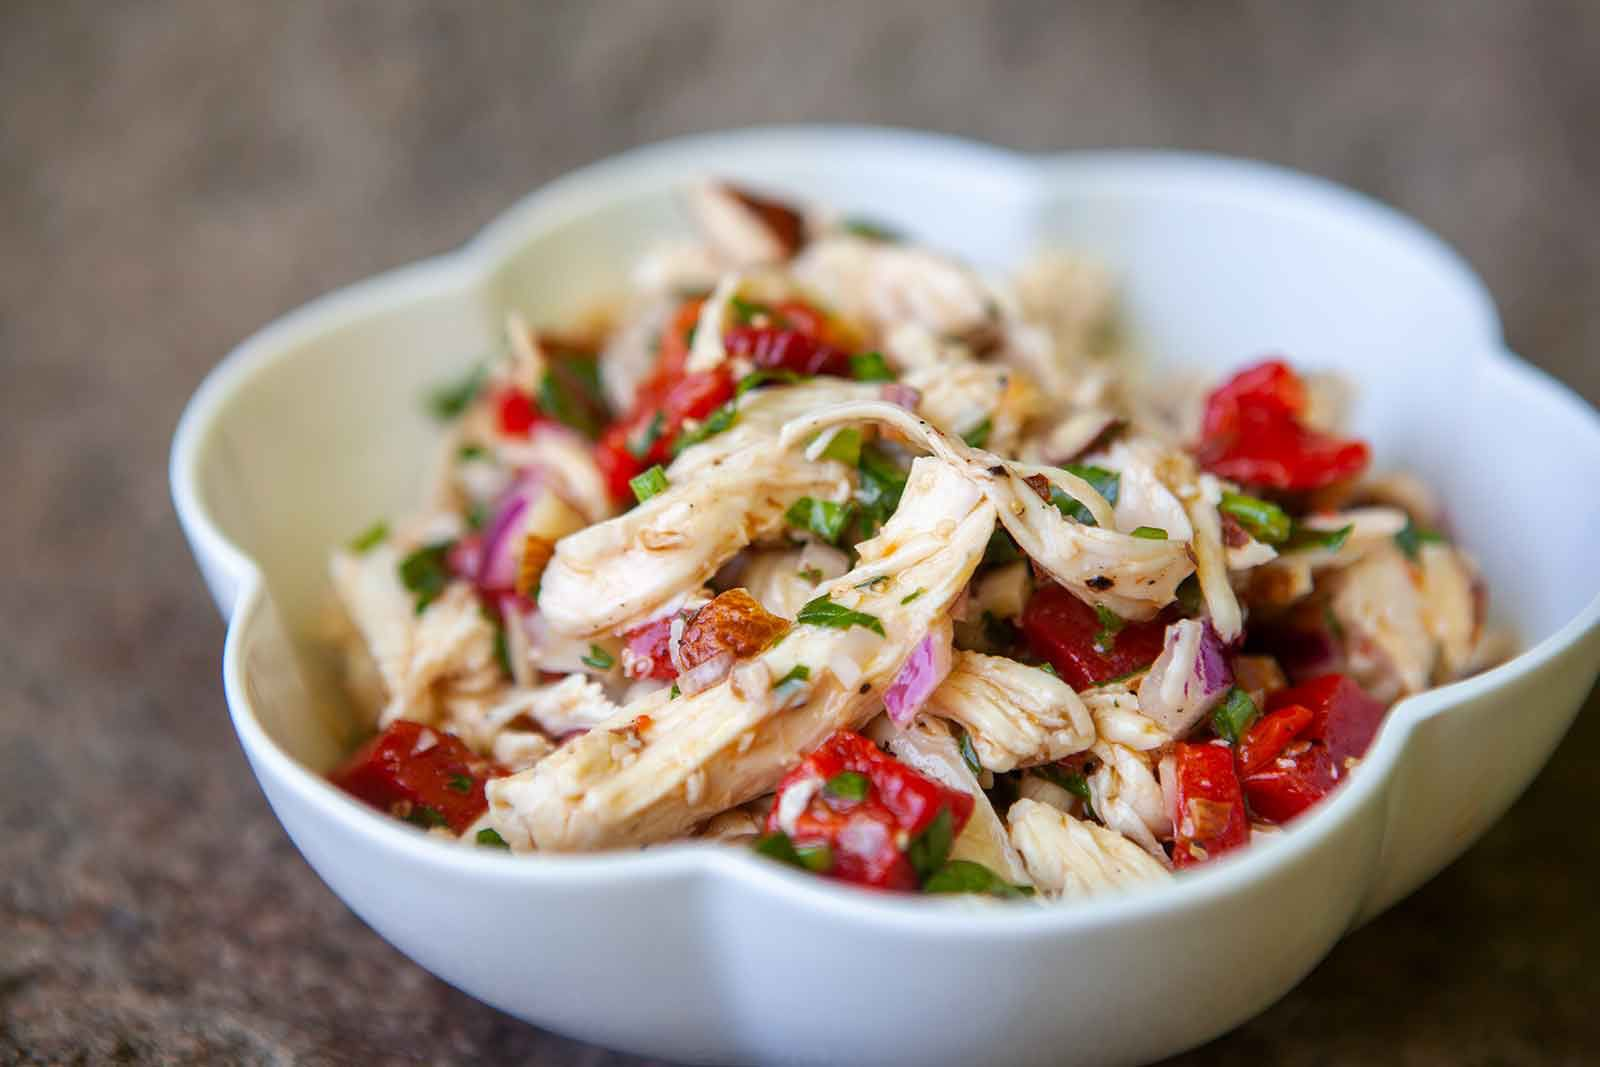 Chicken Salad with Roasted Bell Peppers